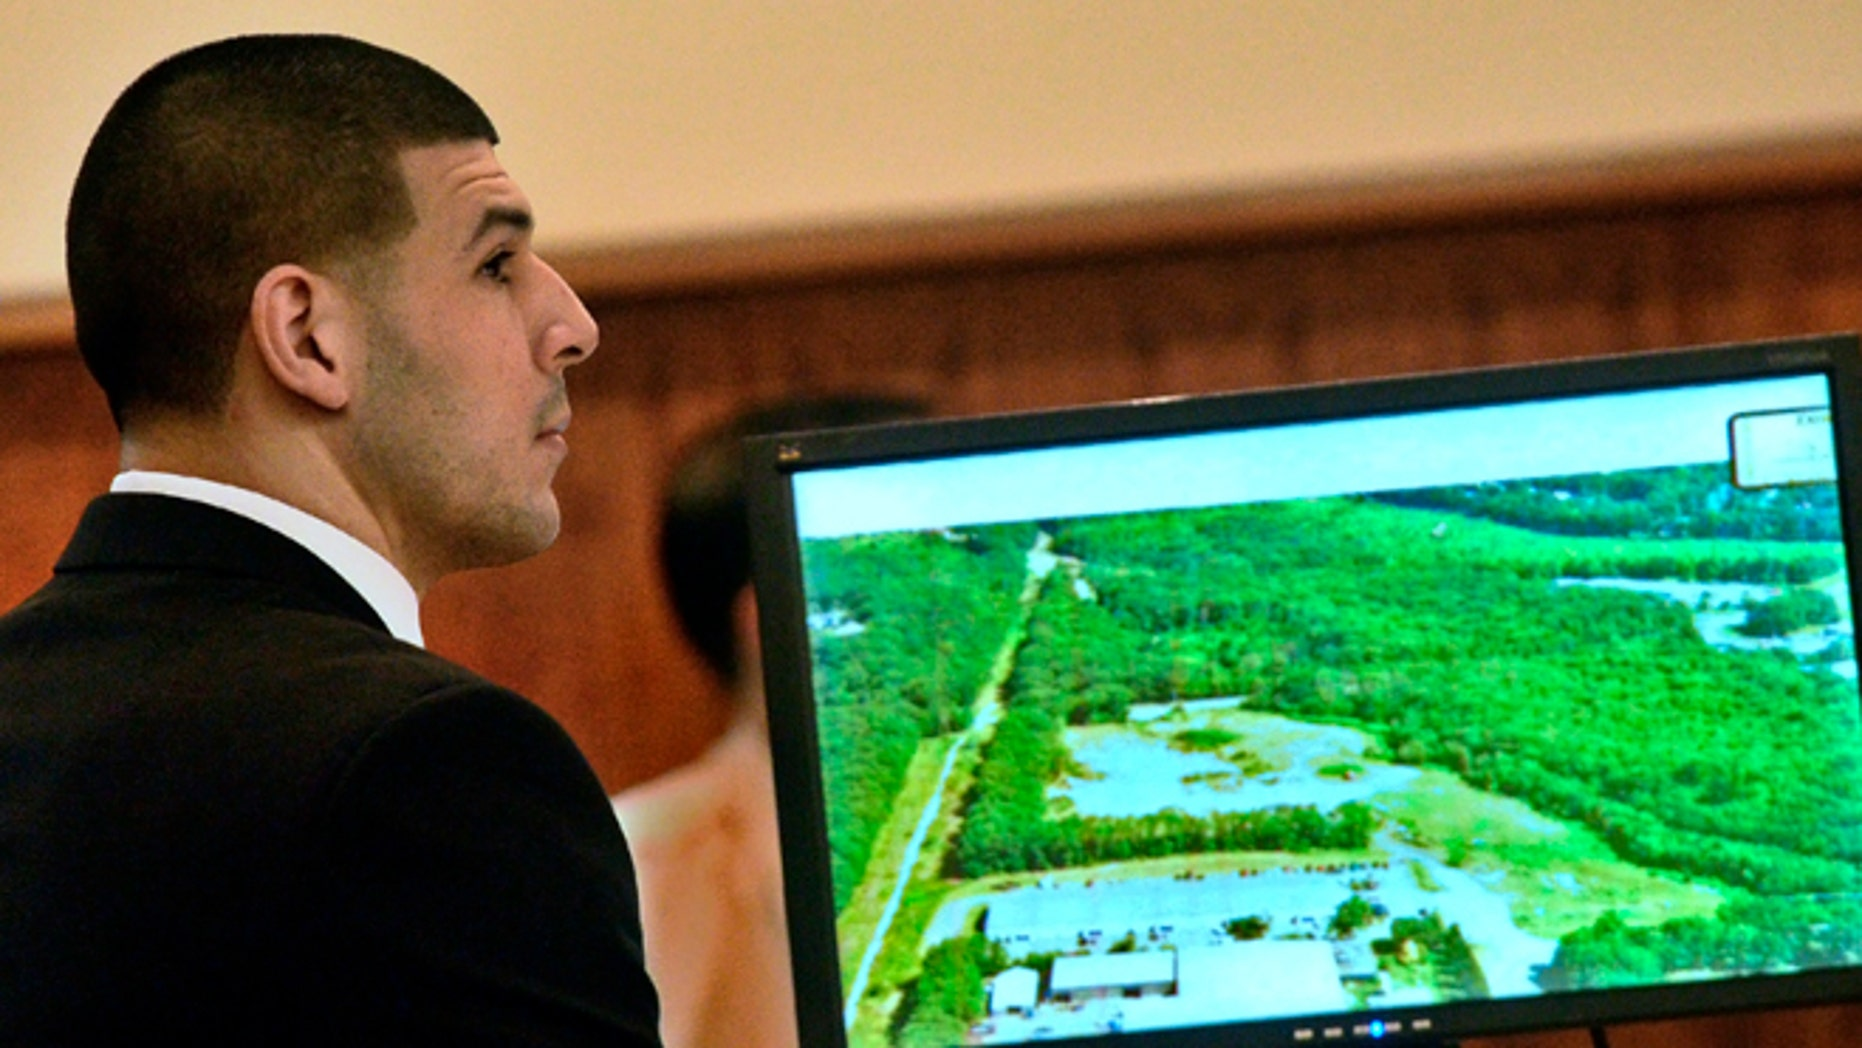 Former New England Patriots football player Aaron Hernandez listens during his murder trial as a prosecution exhibit is displayed, Friday, Jan. 30, 2015, in Fall River, Mass. Hernandez is charged with killing semiprofessional football player Odin Lloyd, 27, in June 2013. (AP Photo/The Boston Herald, Ted Fitzgerald, Pool)